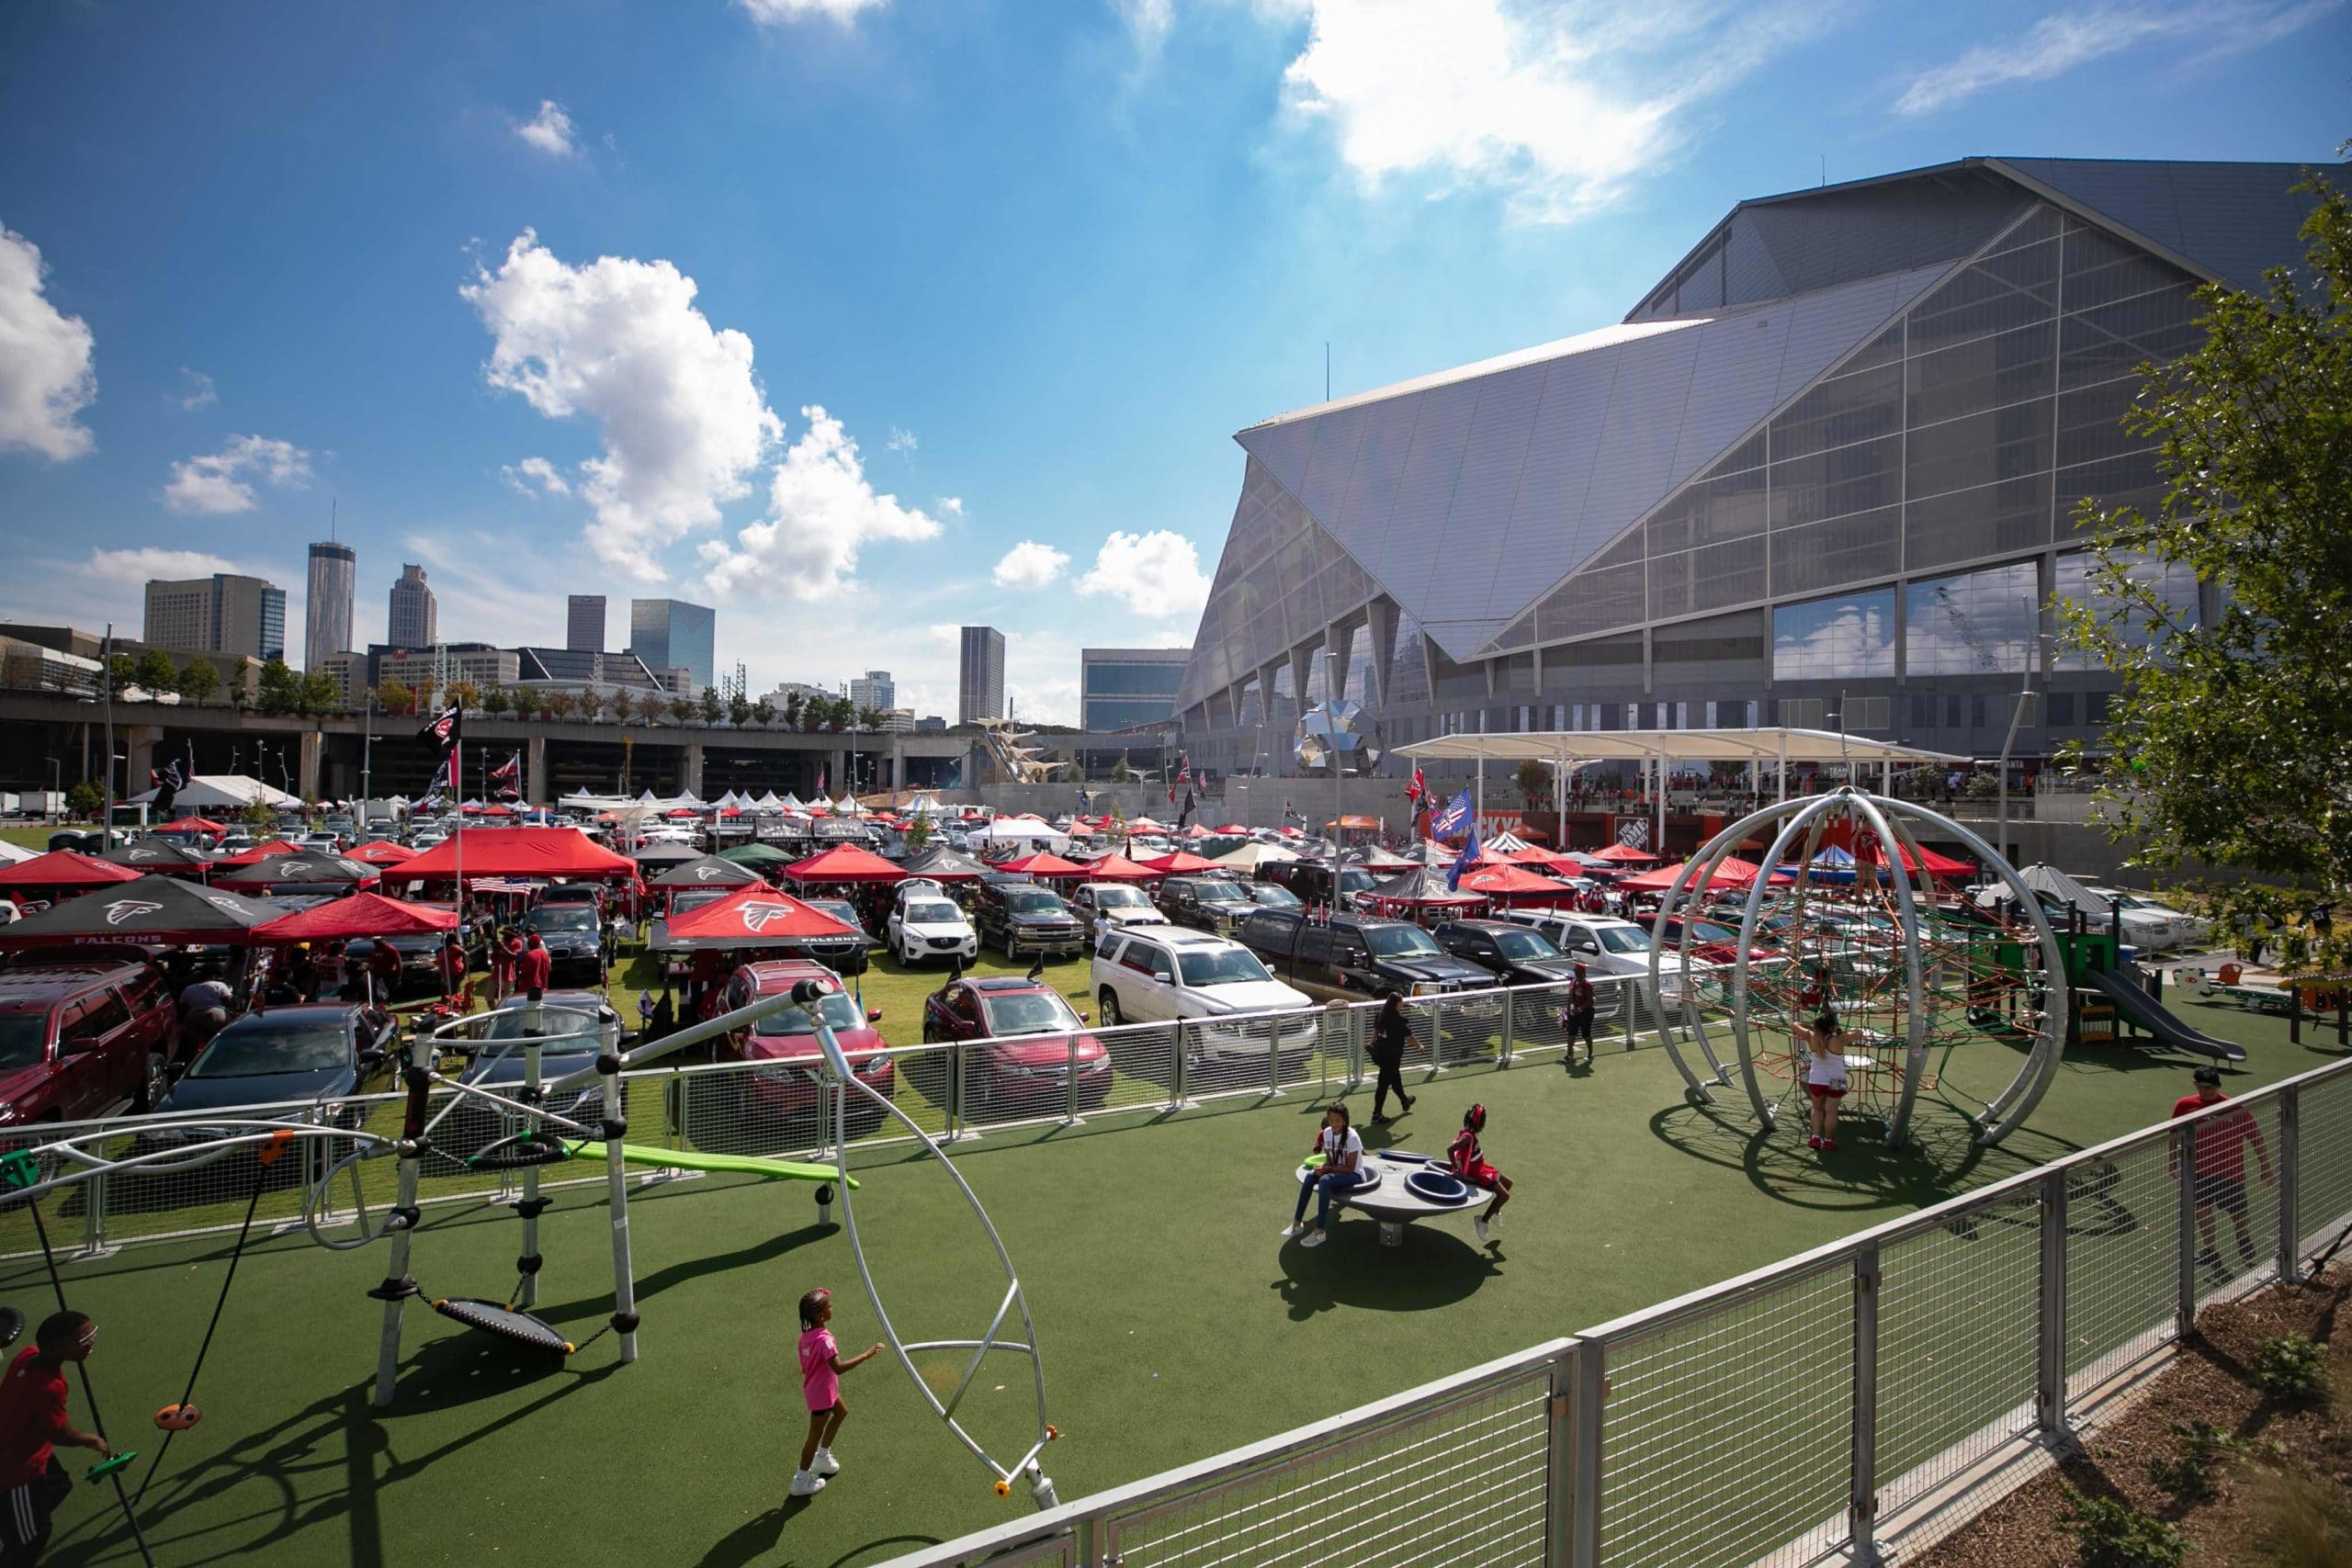 Home Depot Backyard Fabric Structures to Shelter Super Bowl Attendees